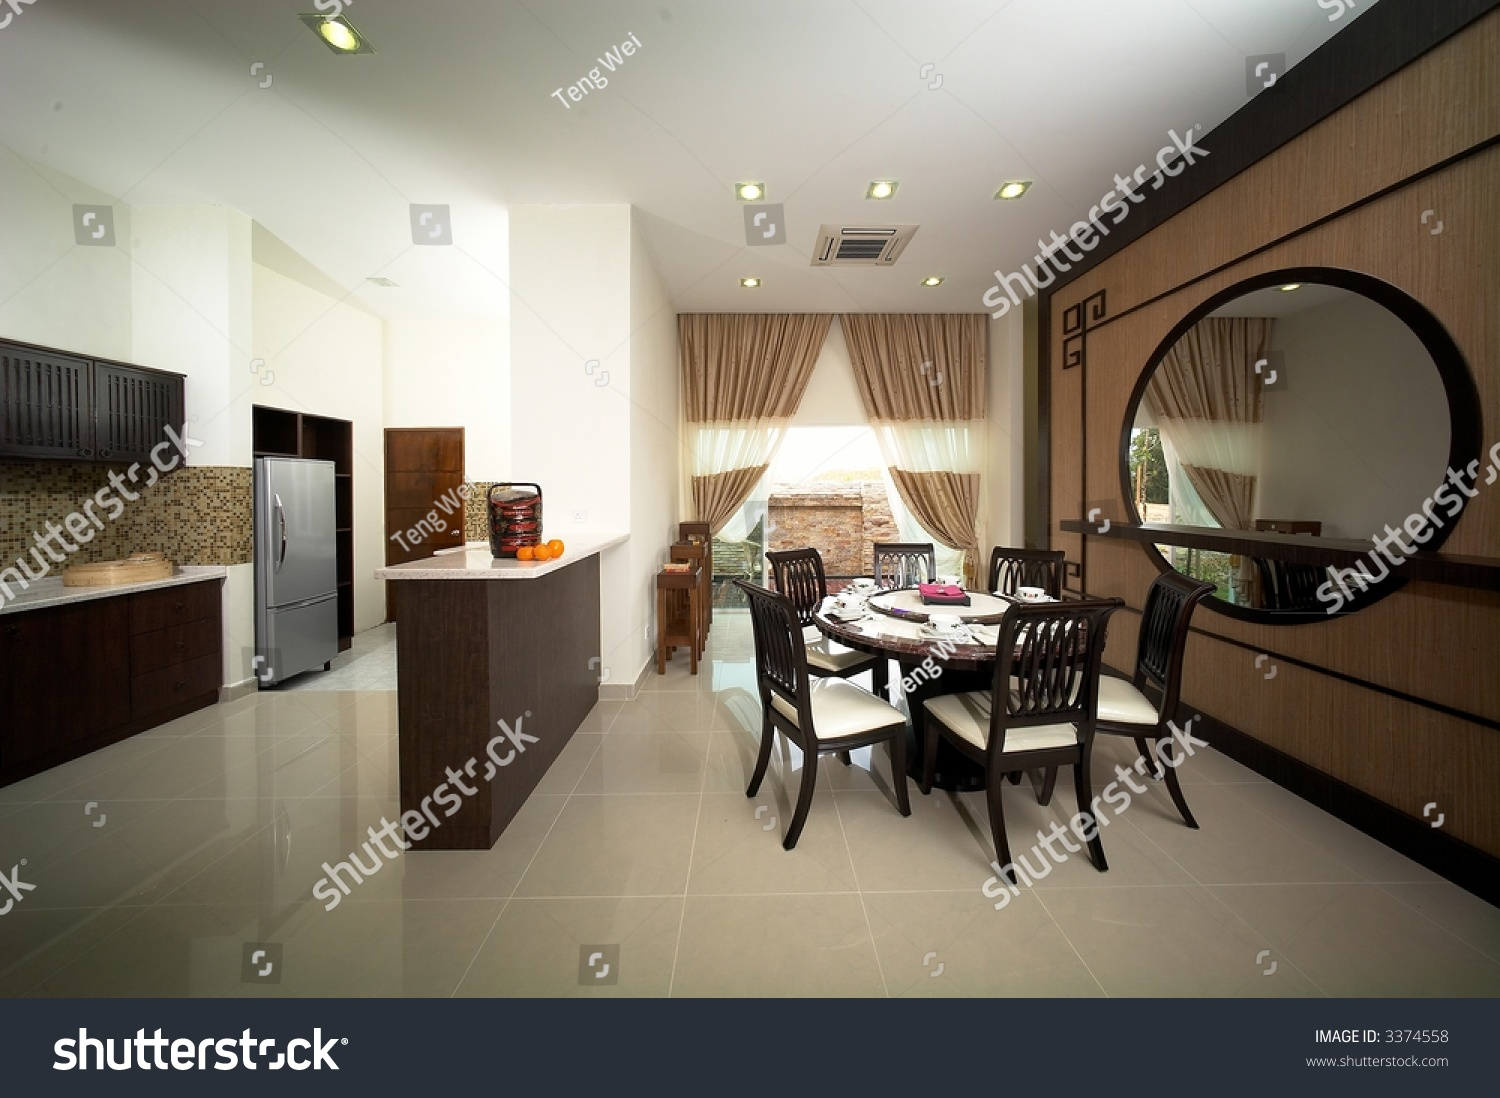 Interior design layout stock photo 3374558 shutterstock for Teng yong interior design decoration